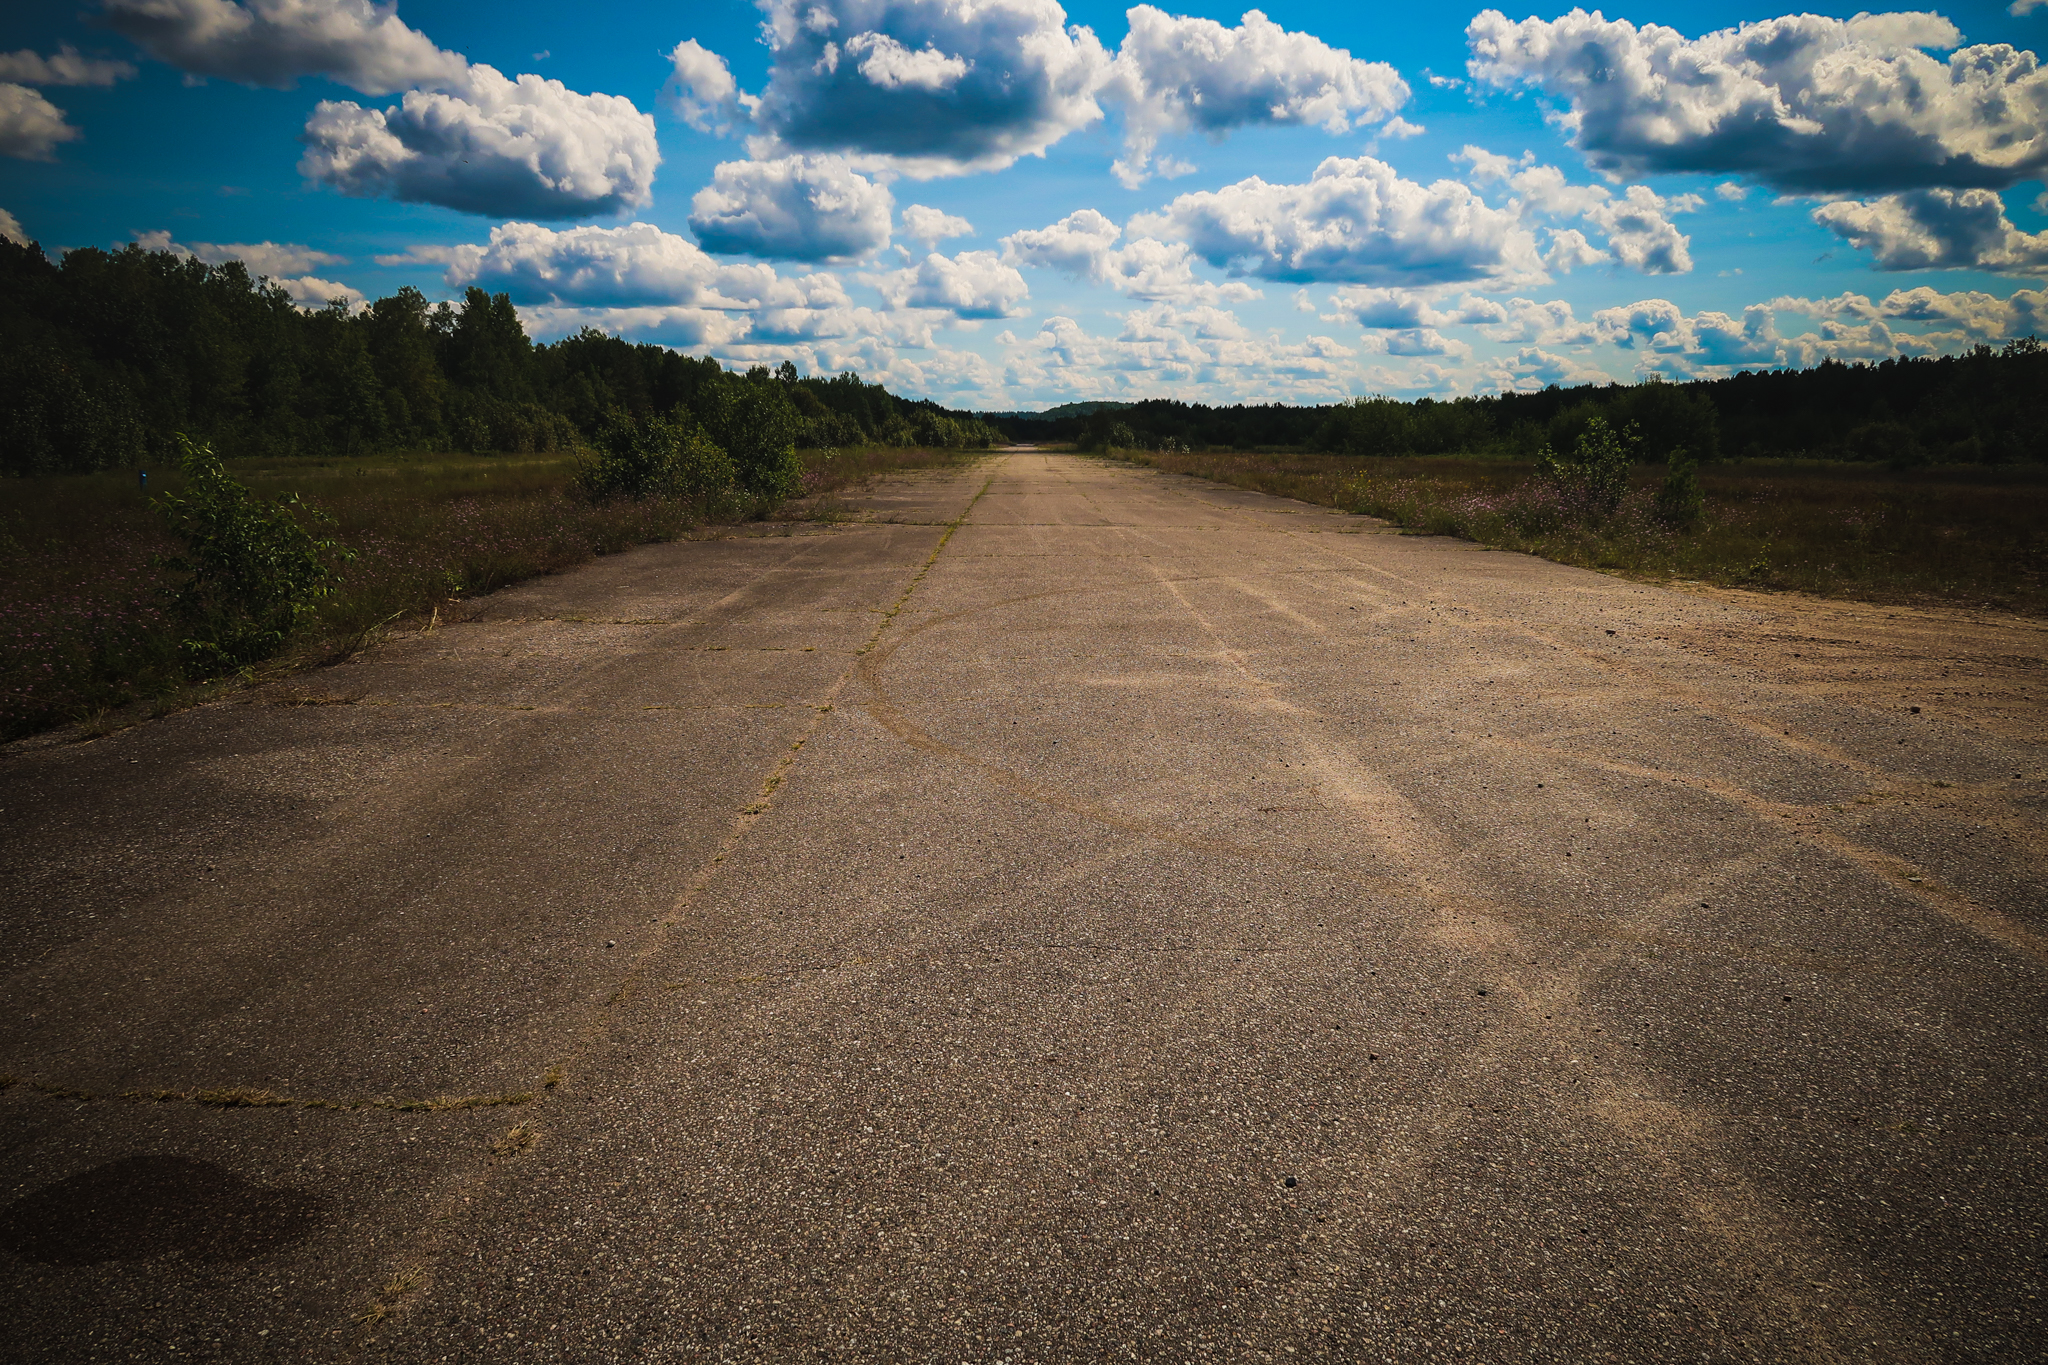 An abandoned government airstrip in the middle of the woods.